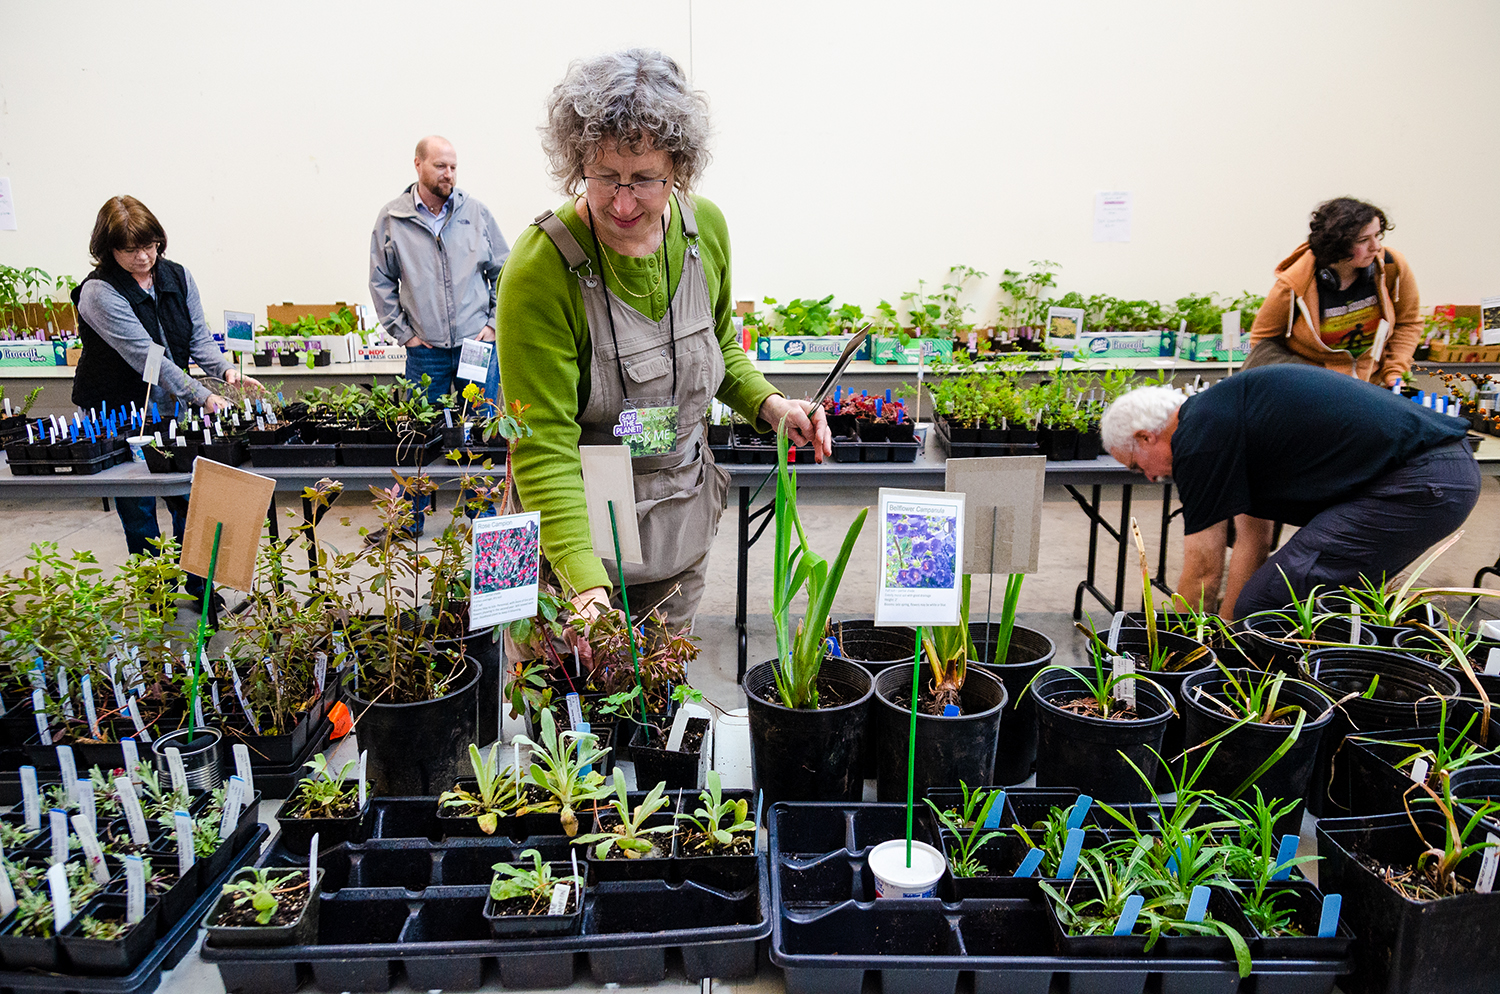 Students, staff and community members browse the 2018 plant swap and sale in Whitehorse Hall. This year's event will take place on Tuesday, April 23, from 10 a.m. -1 p.m. in the Whitehorse Hall Critique Space.